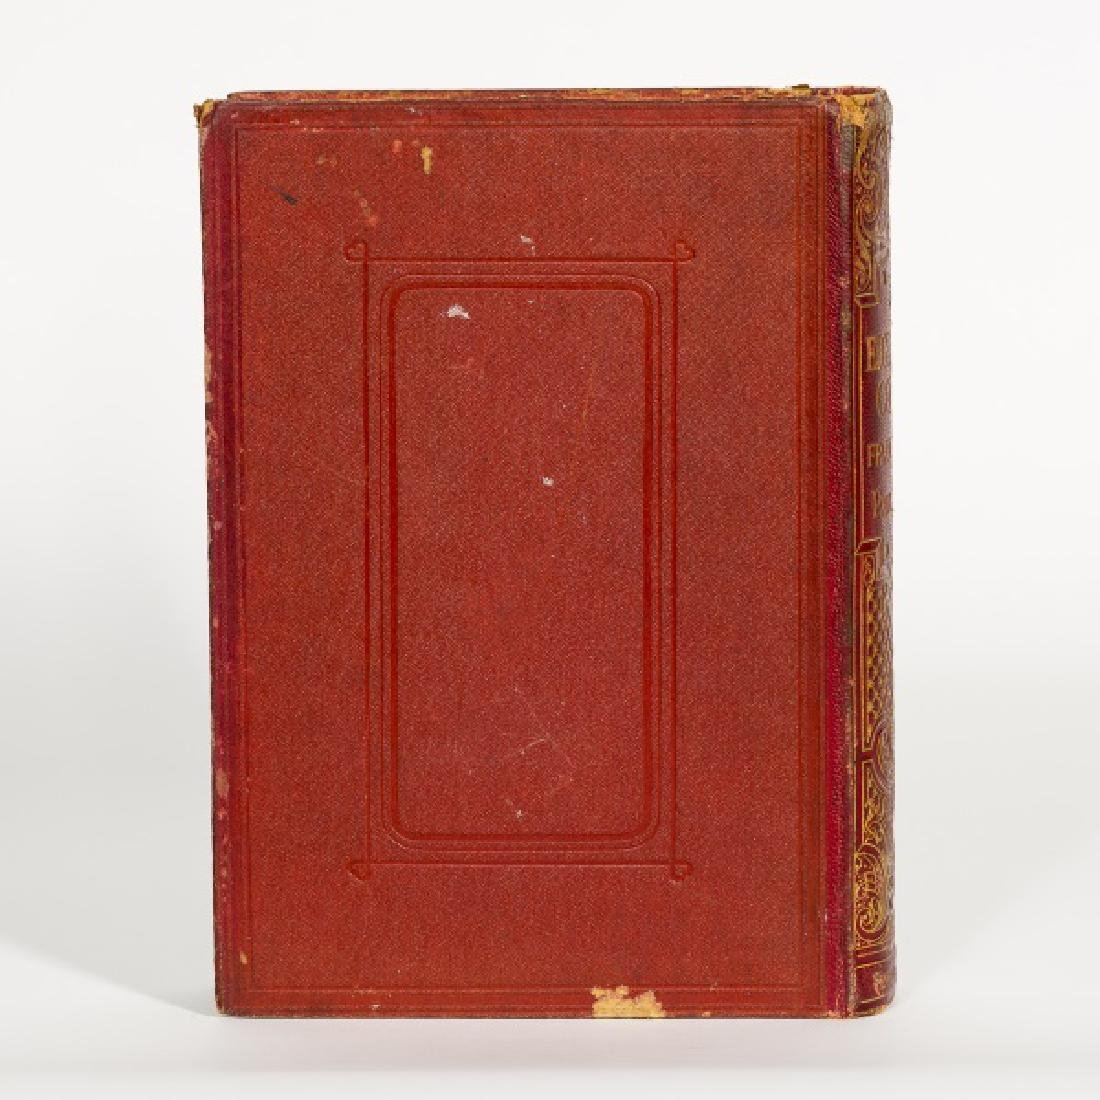 Leather Bound Book from the Library of Teddy Roosevelt - 3